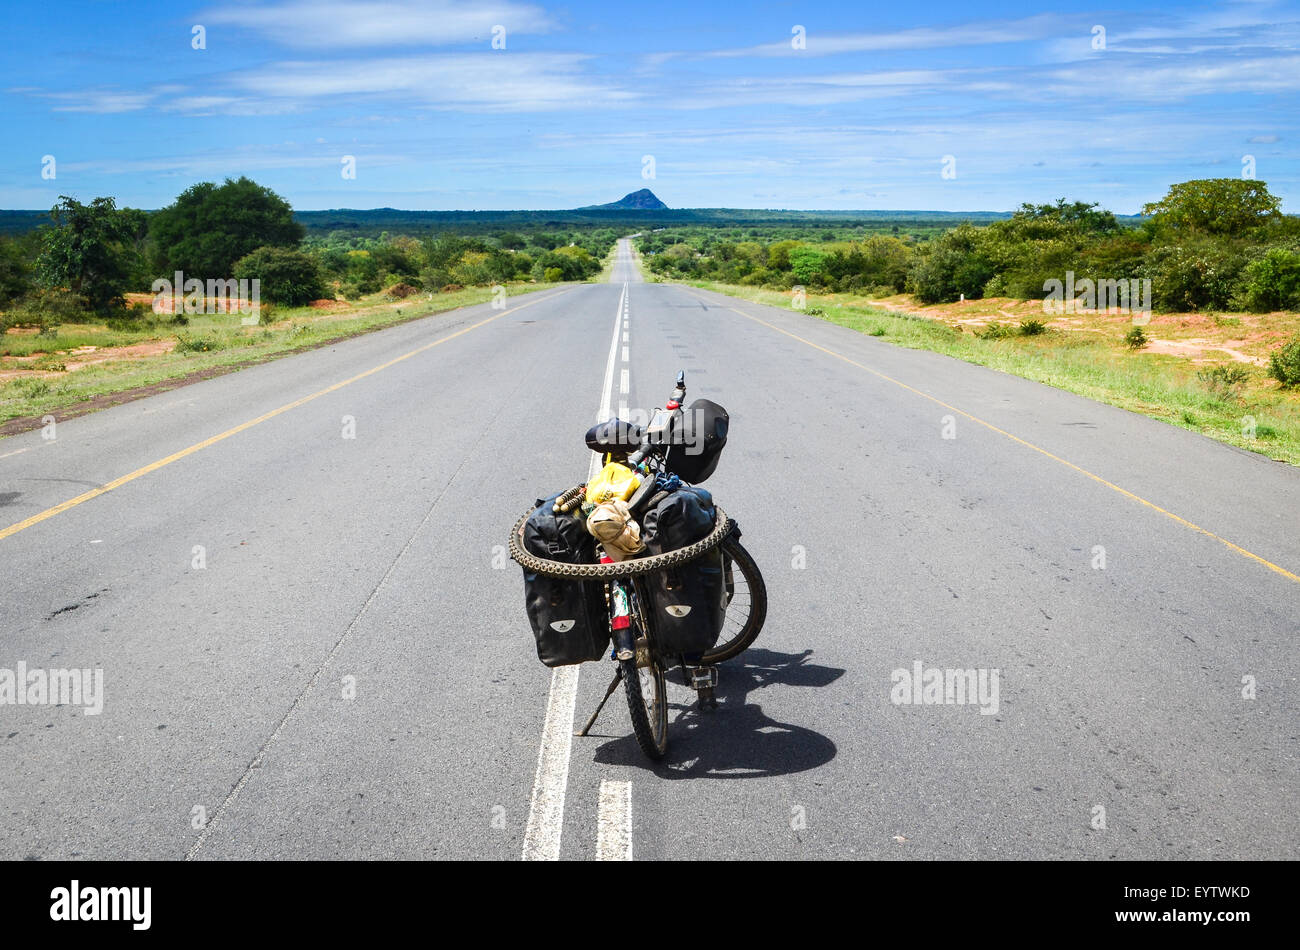 Cycle touring on the tar roads in Angola, Huila province - Stock Image